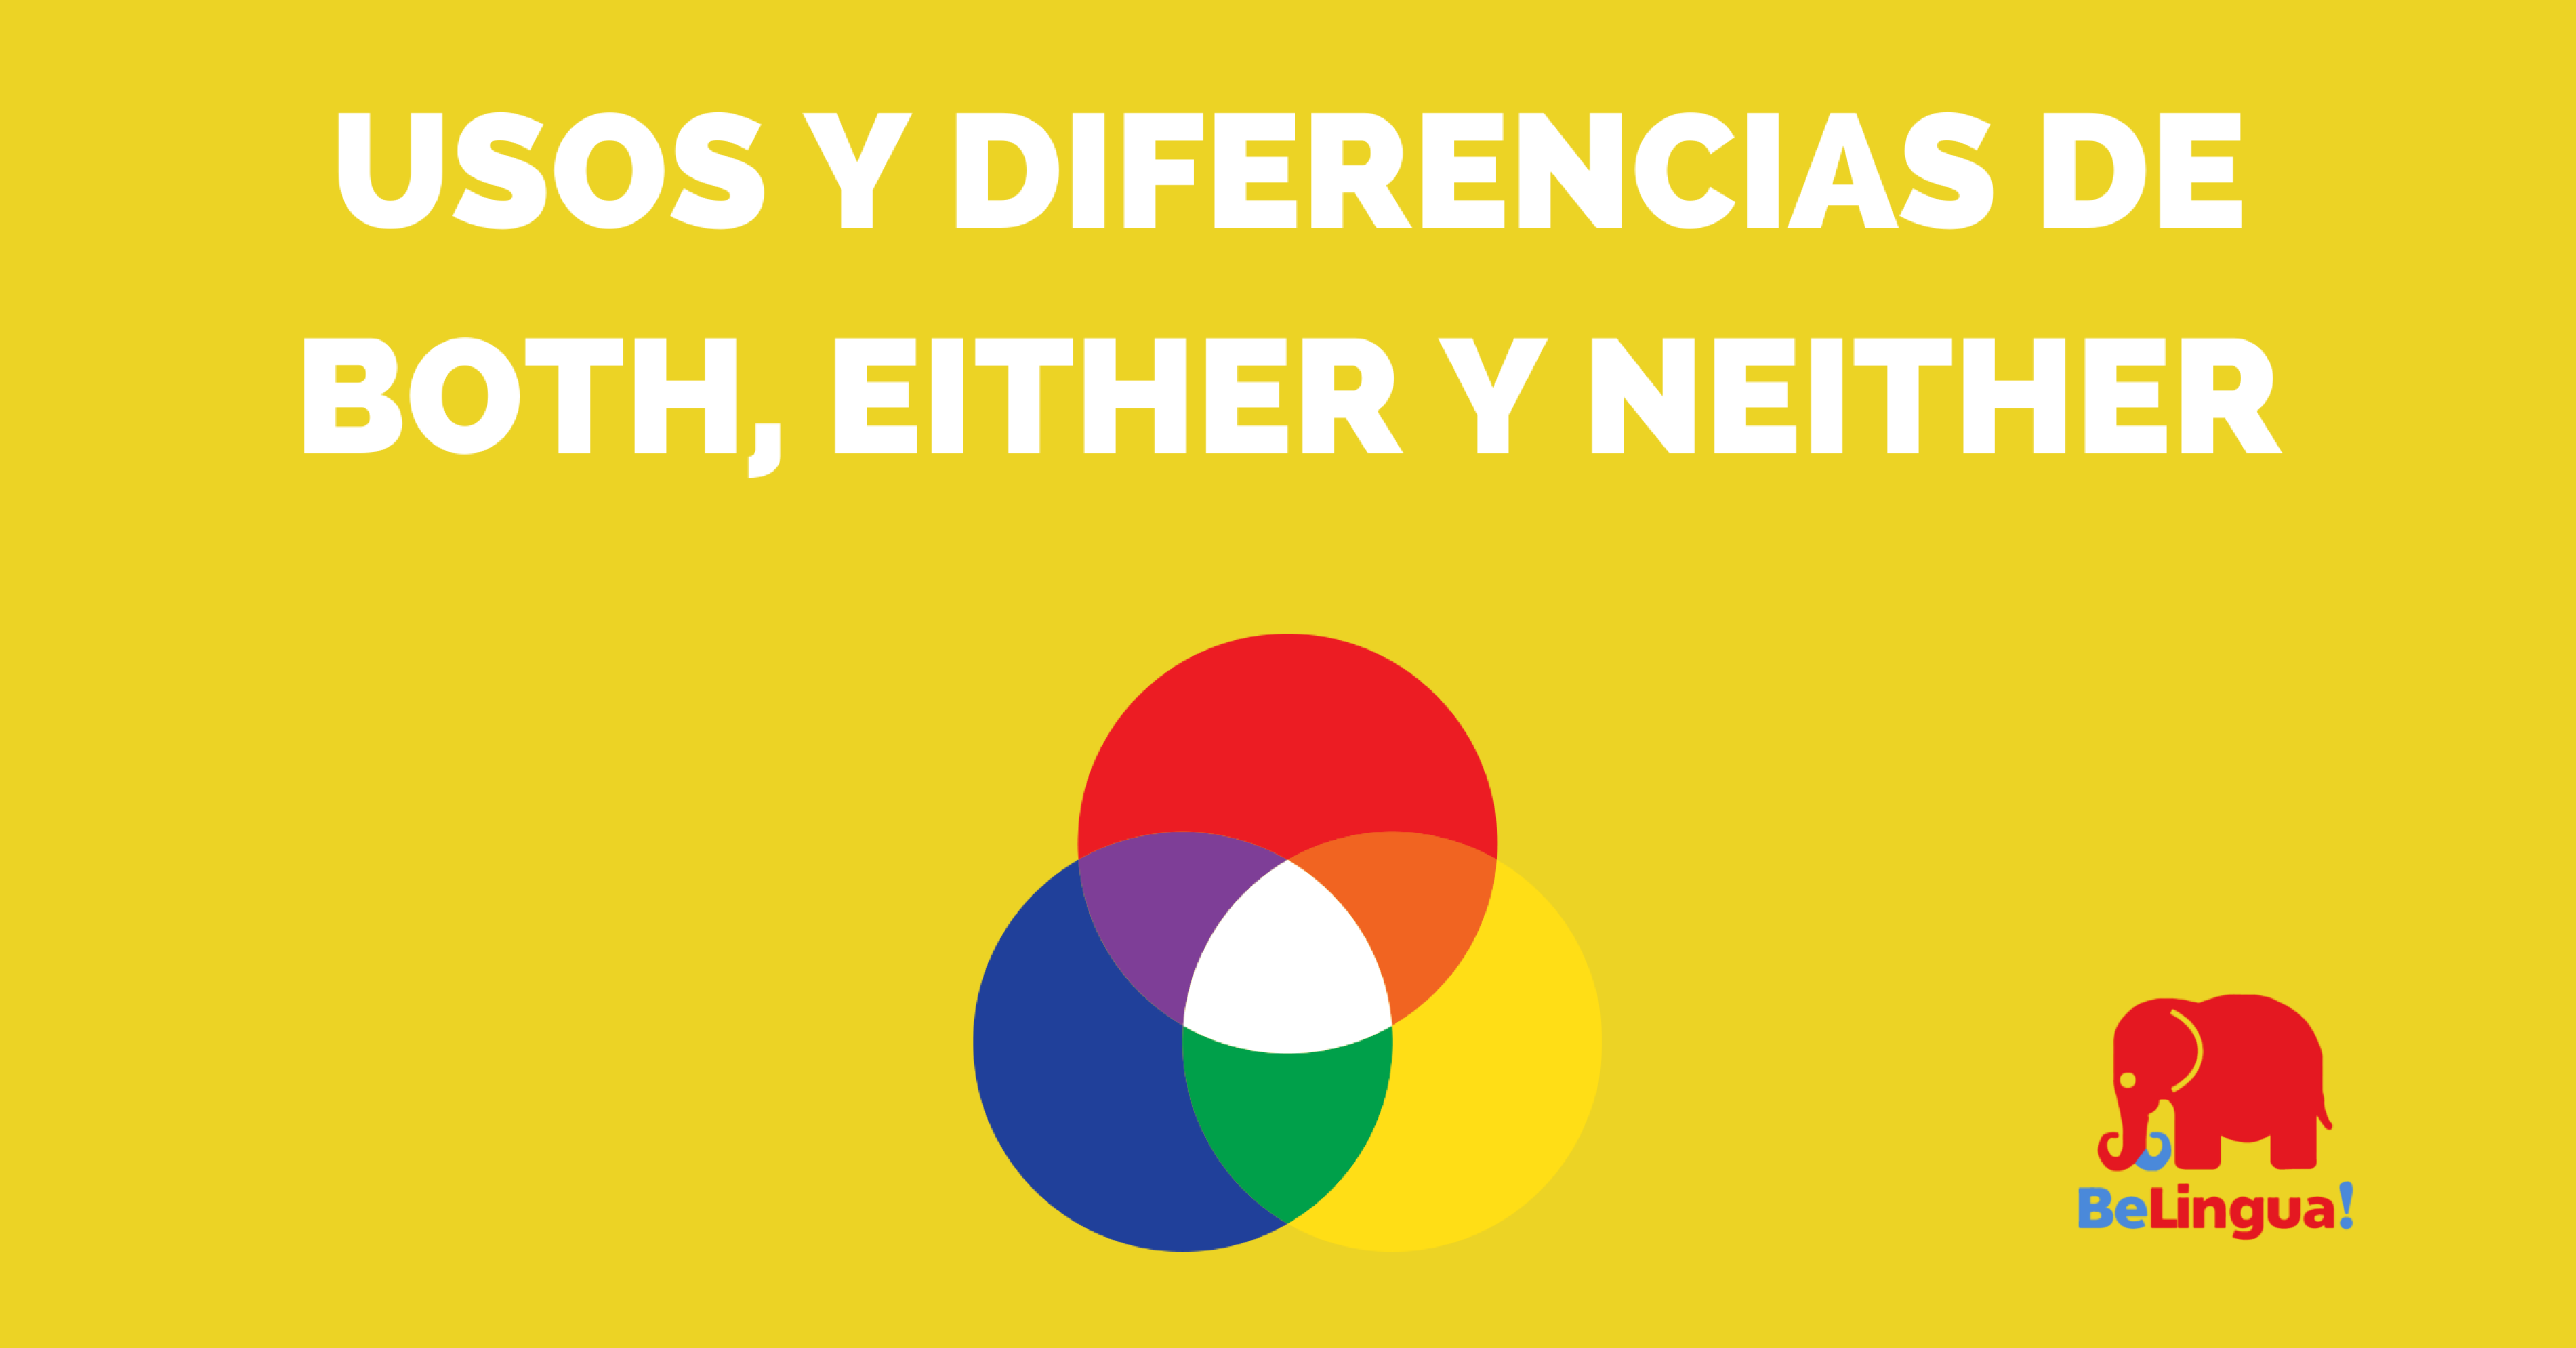 Usos y diferencias de both, either y neither